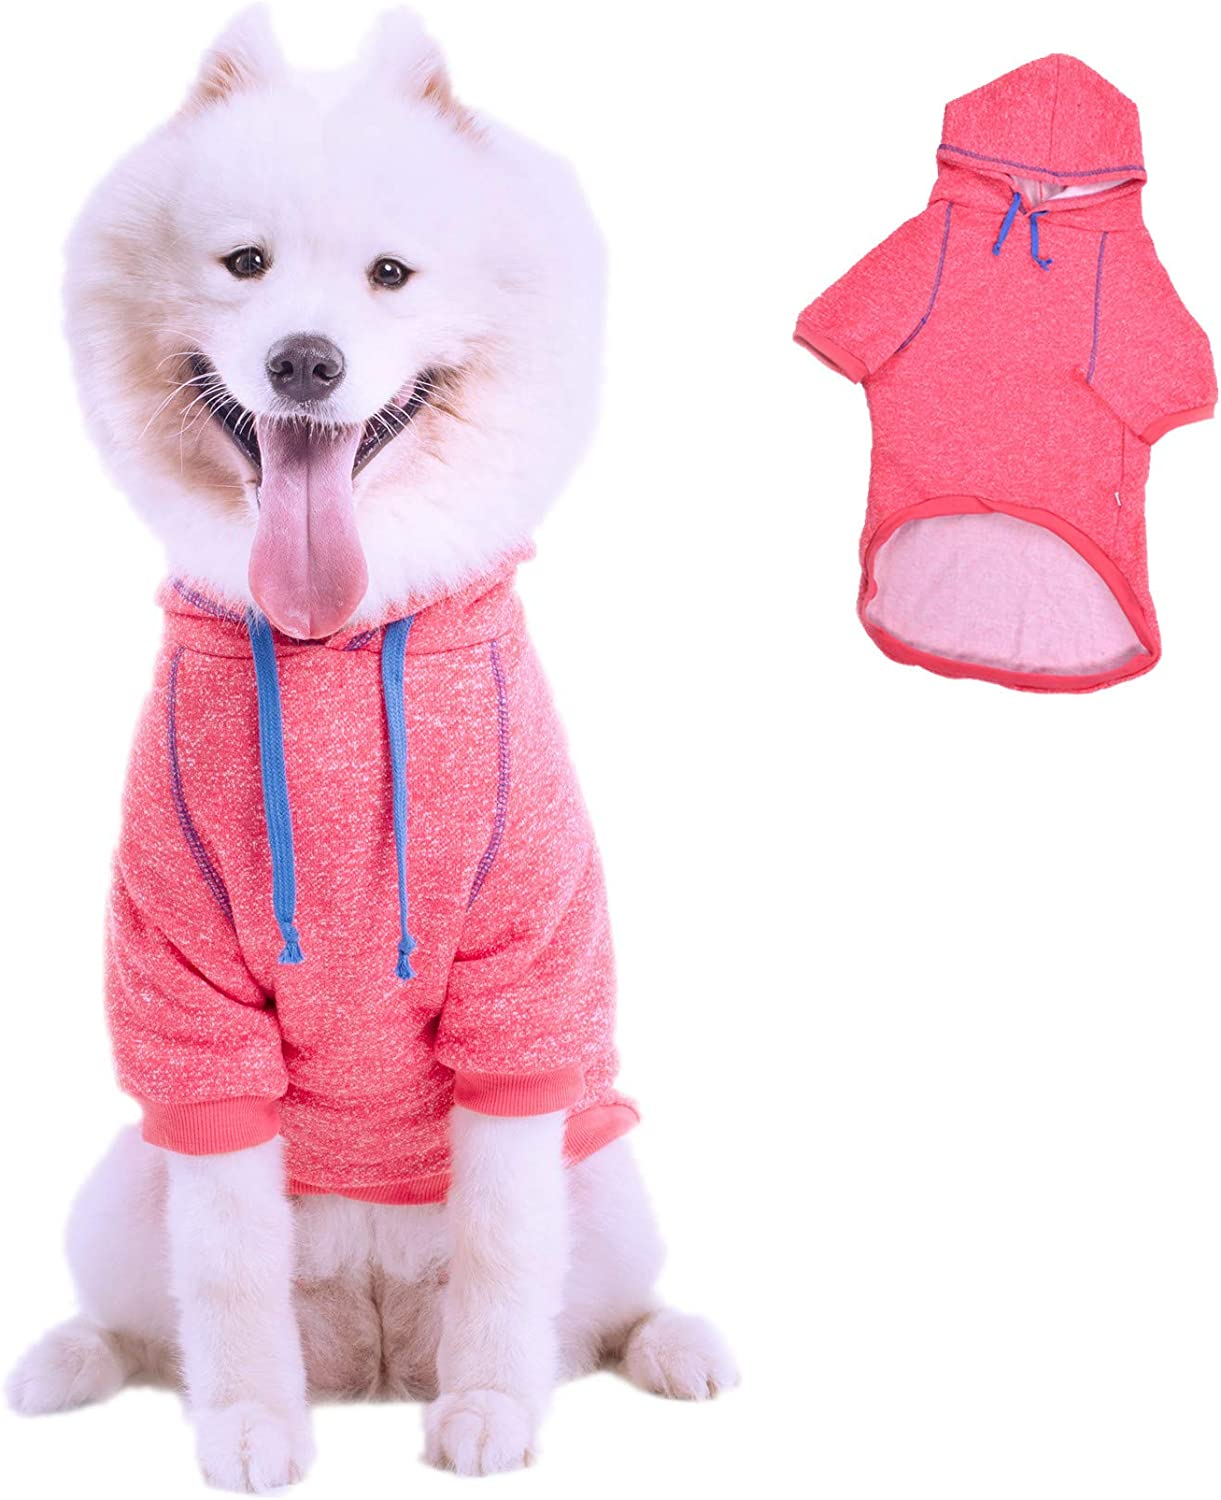 Leowow Dog Sports Clothes Dog Winter Coat Dog Hoodie Puppy Sweater Pet Hoodie for Medium or Large Size Pet-Grey-6XL